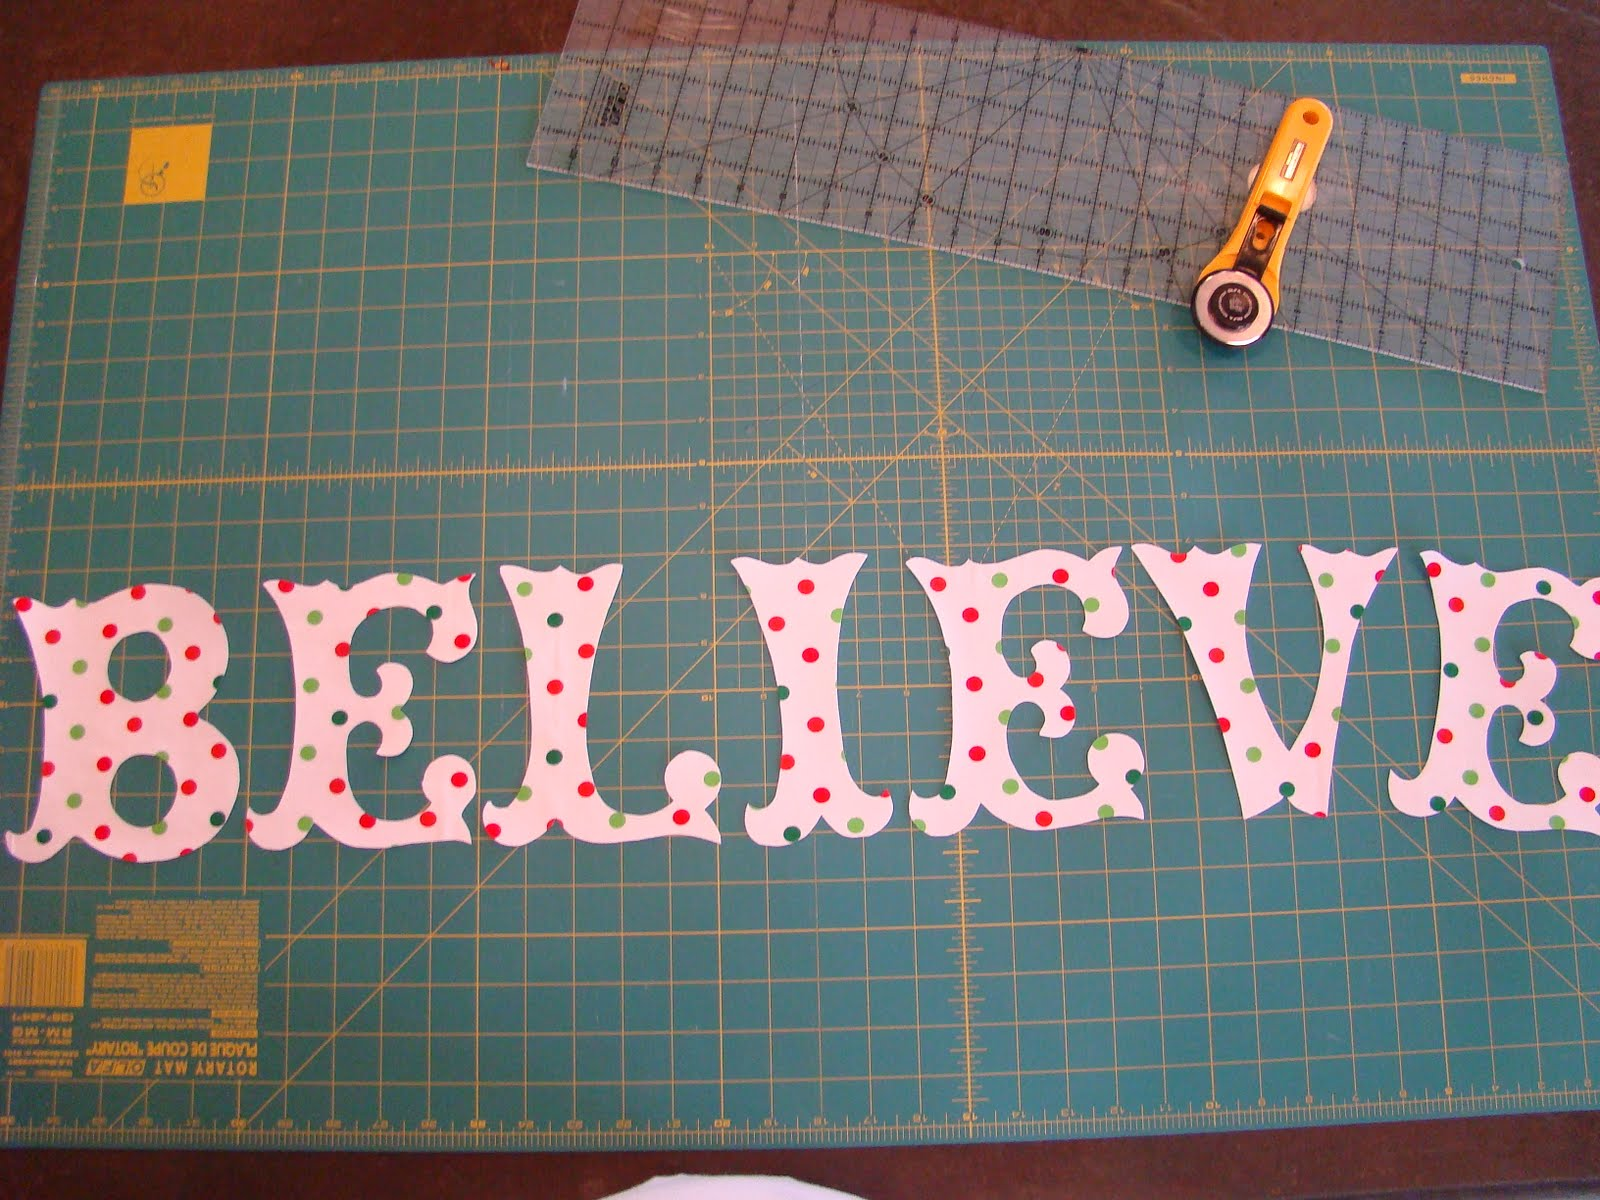 photo relating to Free Printable Alphabet Templates for Applique named No cost Applique Letter Patterns - Visualize Plans References